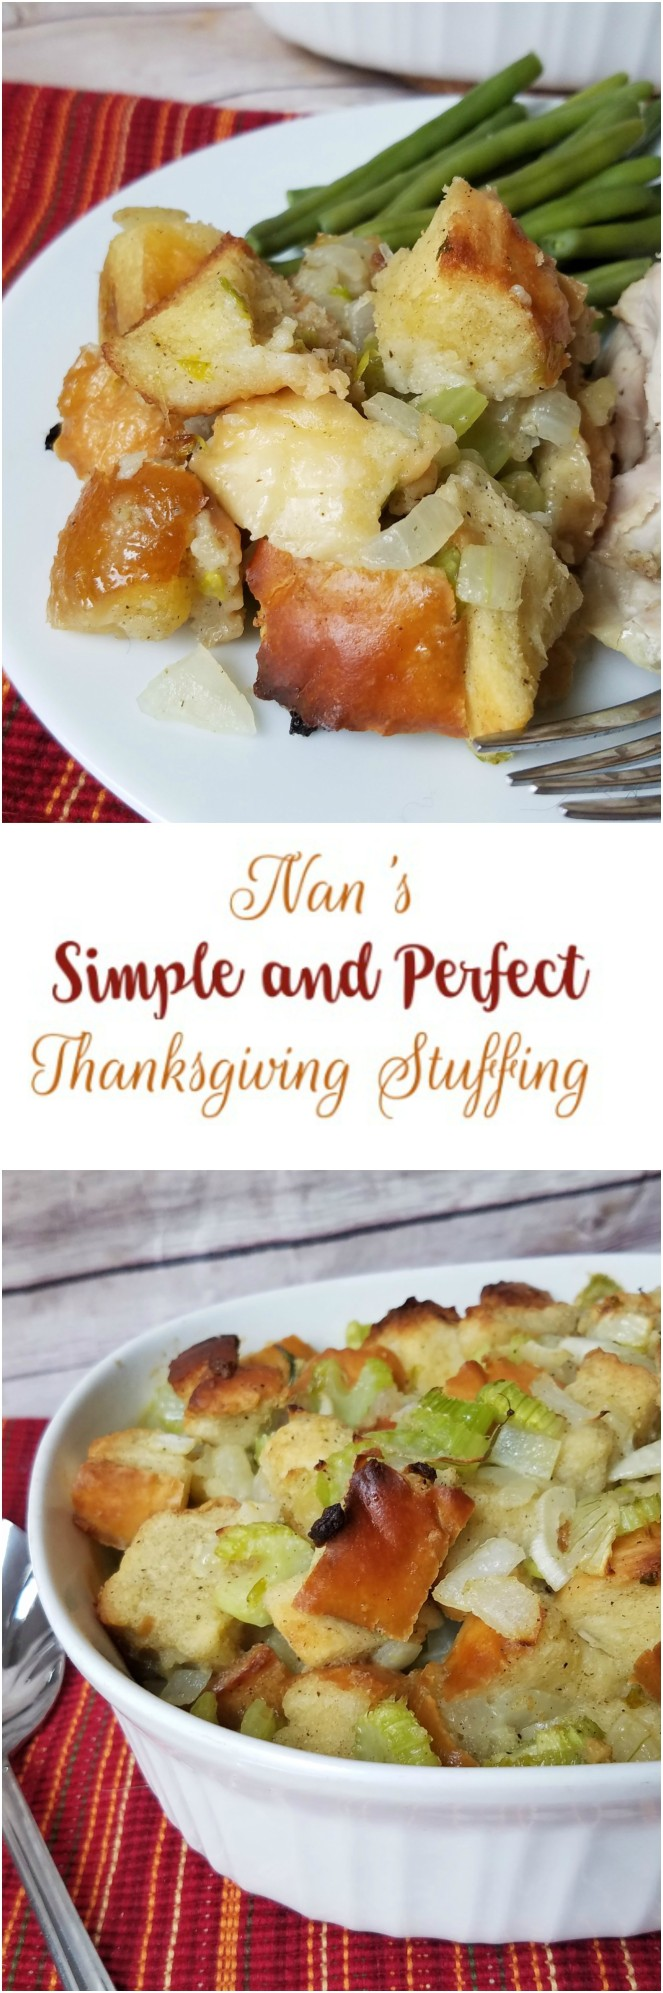 Nan's Simple and Perfect Thanksgiving Stuffing